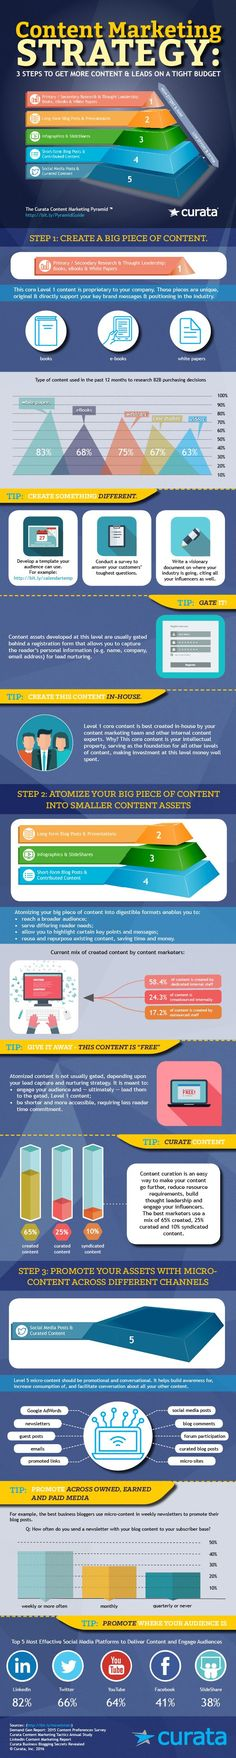 The Ultimate Content Marketing Strategy [Infographic]   Content Marketing Forum